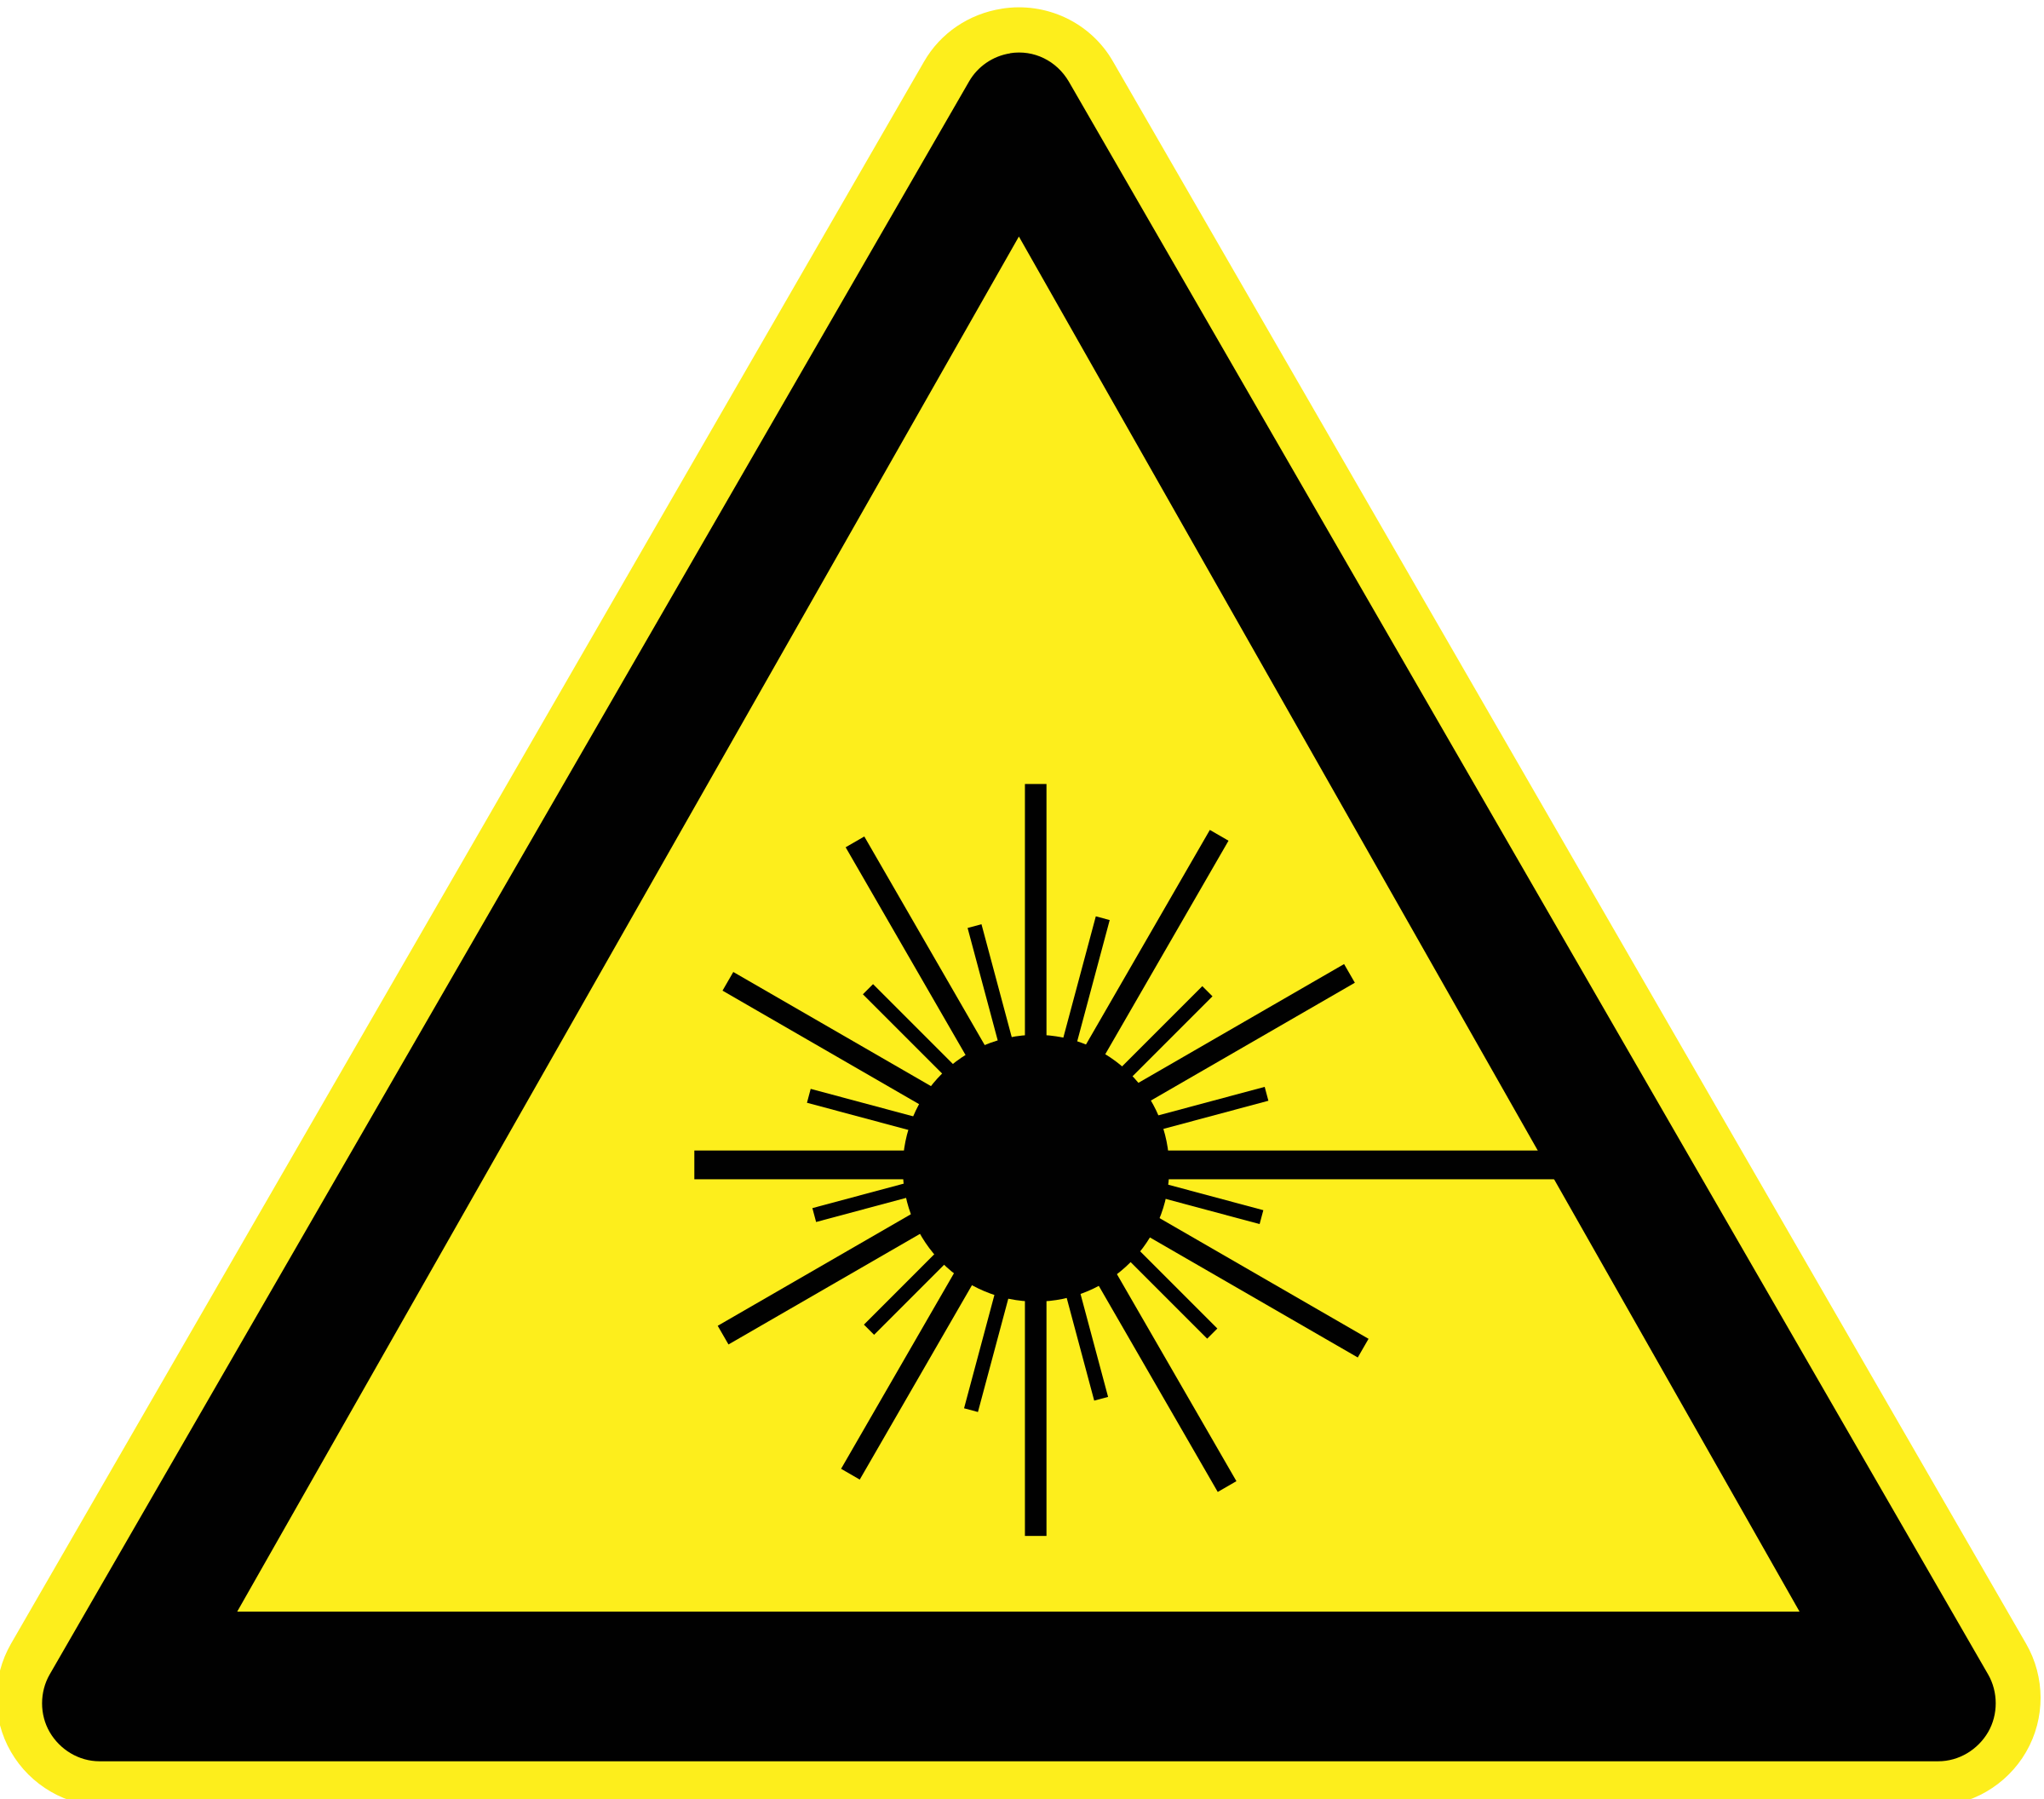 Laser Beam Warning Sign by h0us3s